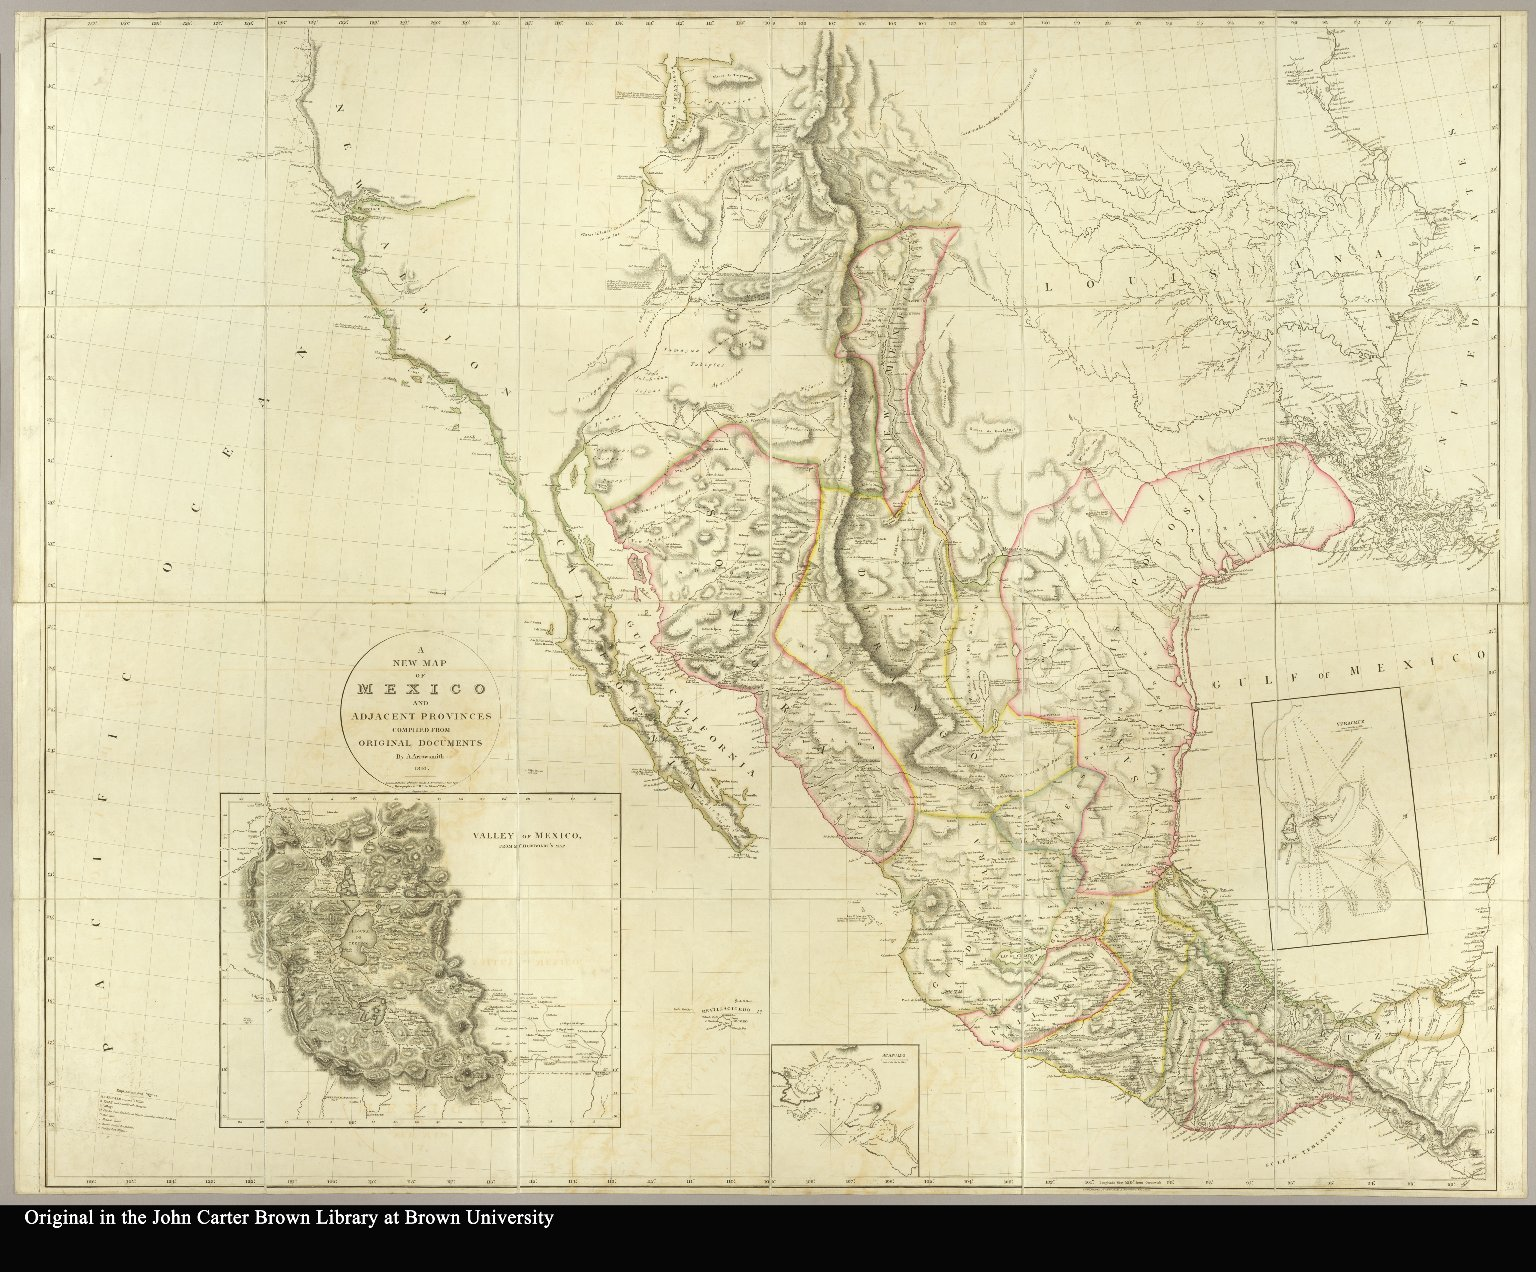 A New Map Of Mexico And Adjacent Provinces Compiled From Original